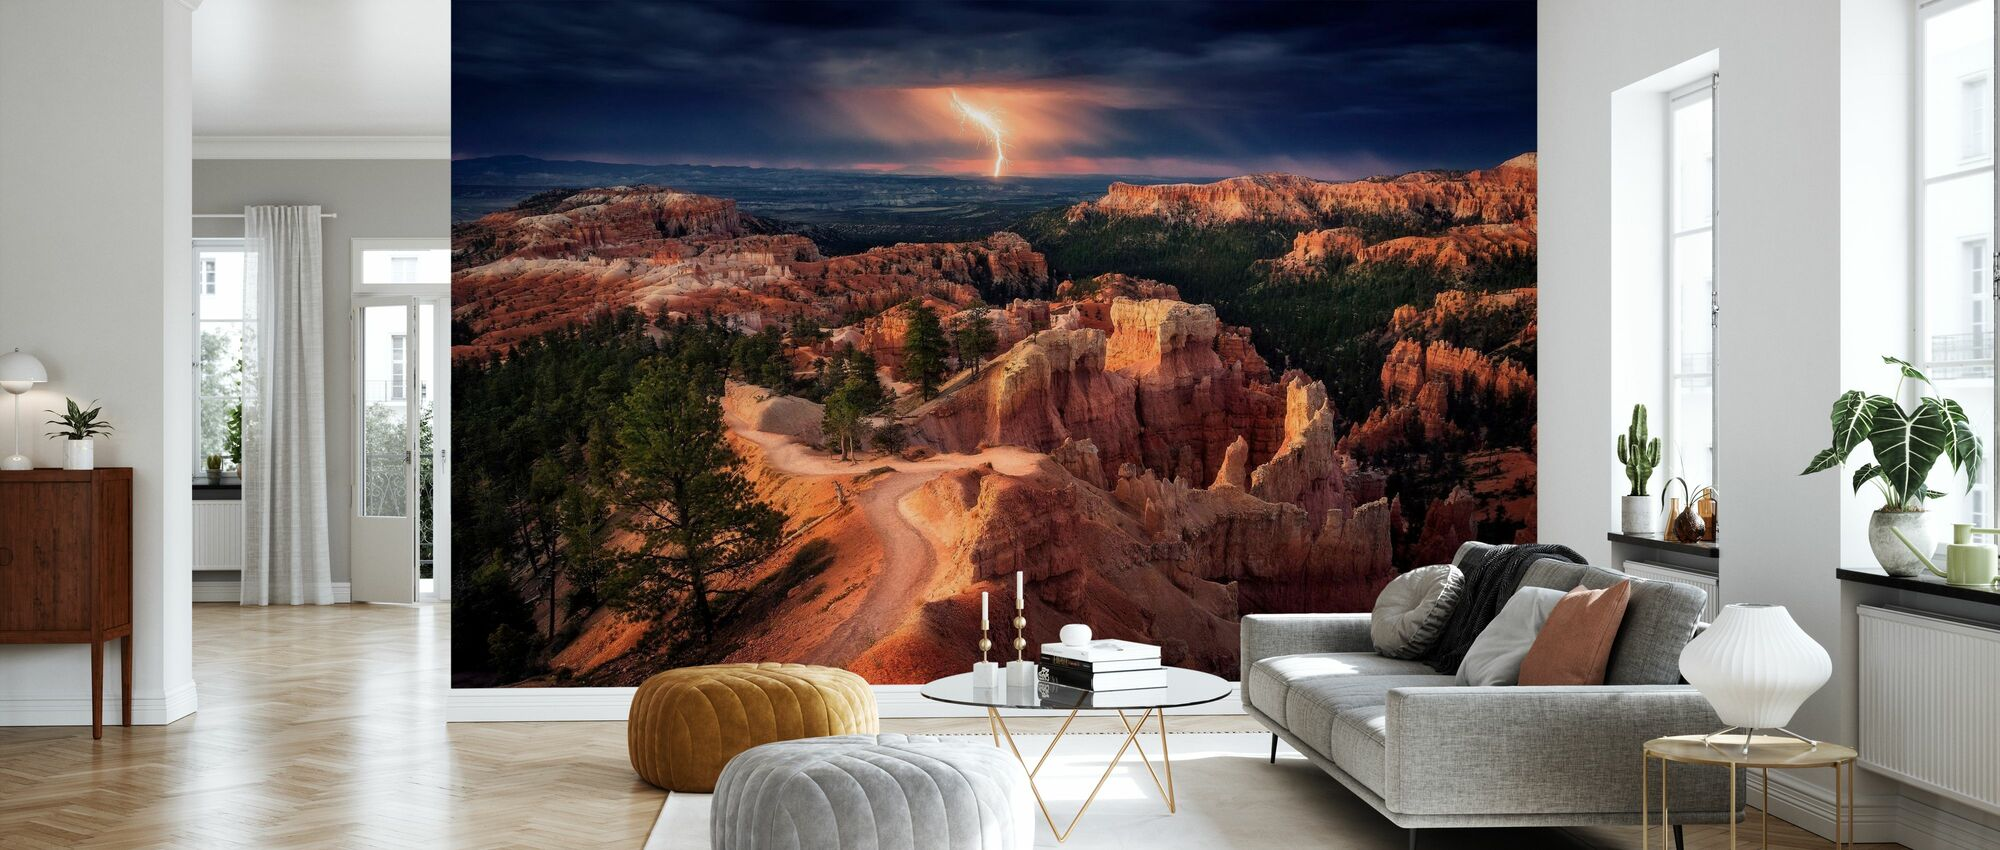 Lightning over Bryce Canyon - Wallpaper - Living Room